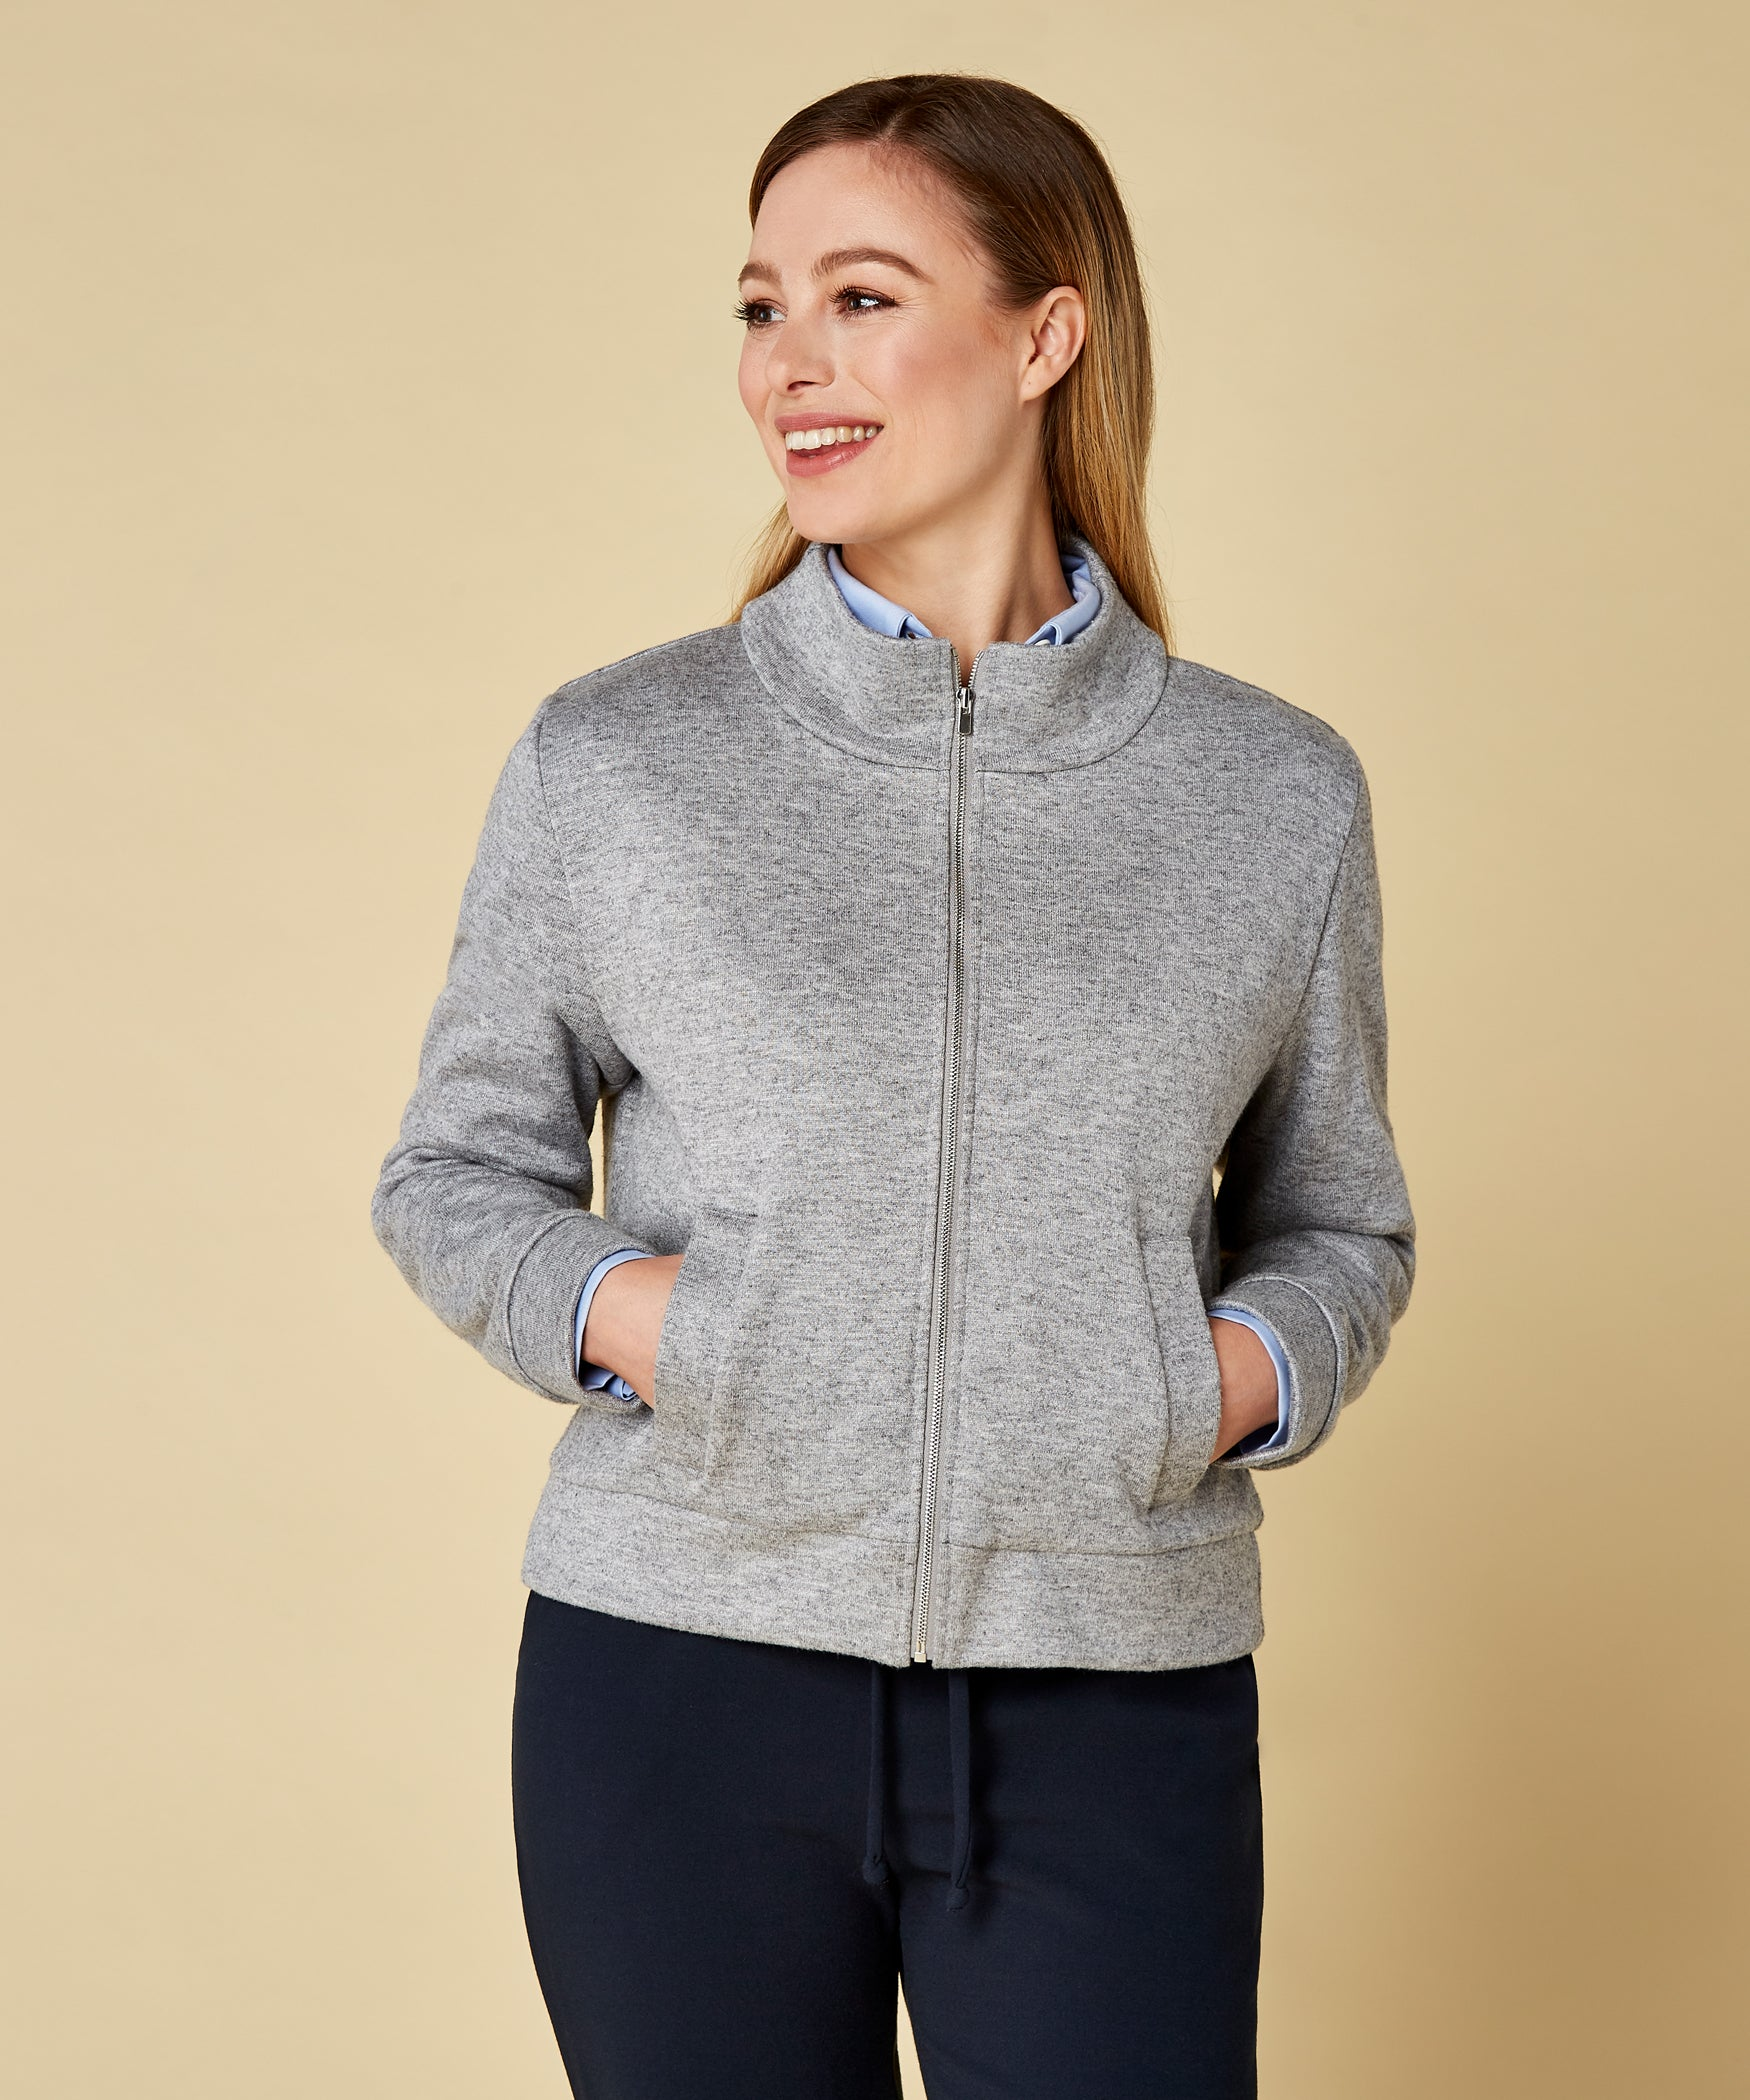 Petite Grey Funnel Neck Jacket - Jennifer-Anne